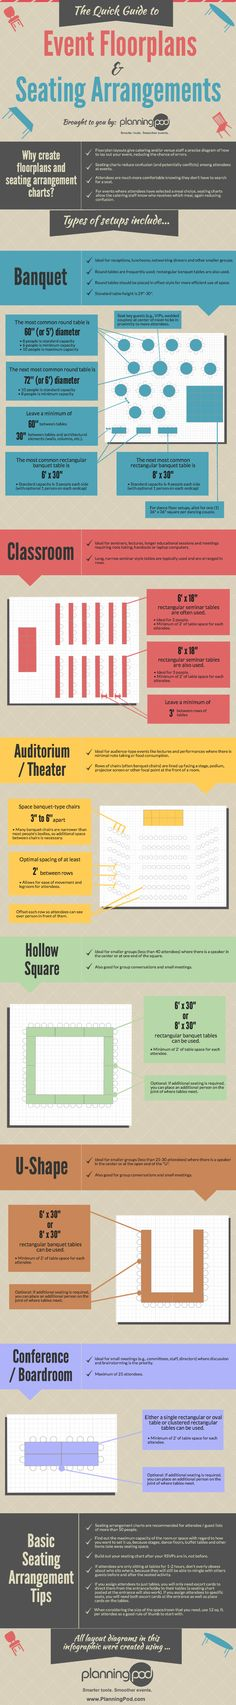 Quick Guide to Event Floor Plans and Seating Arrangements | @PlanPod